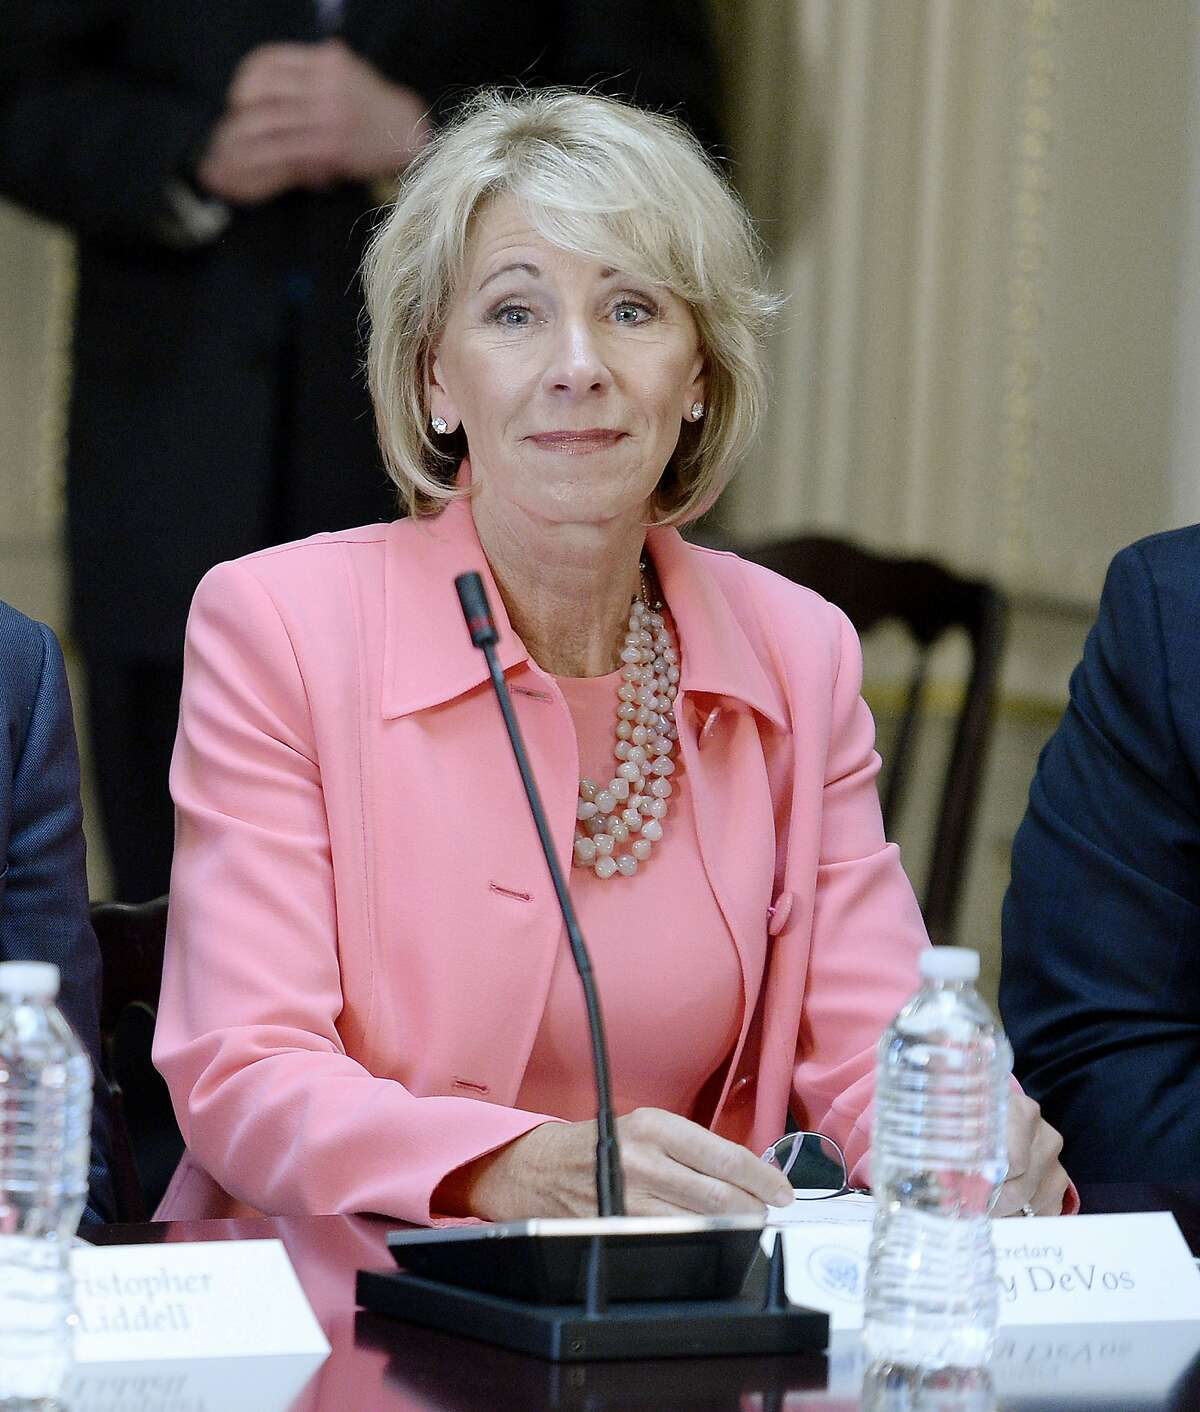 Education Sec. Betsy DeVos listens as U.S. President Donald Trump speaks during a strategic and policy discussion with CEOs in the State Department Library in the Eisenhower Executive Office Building on April 11, 2017, in Washington, D.C.